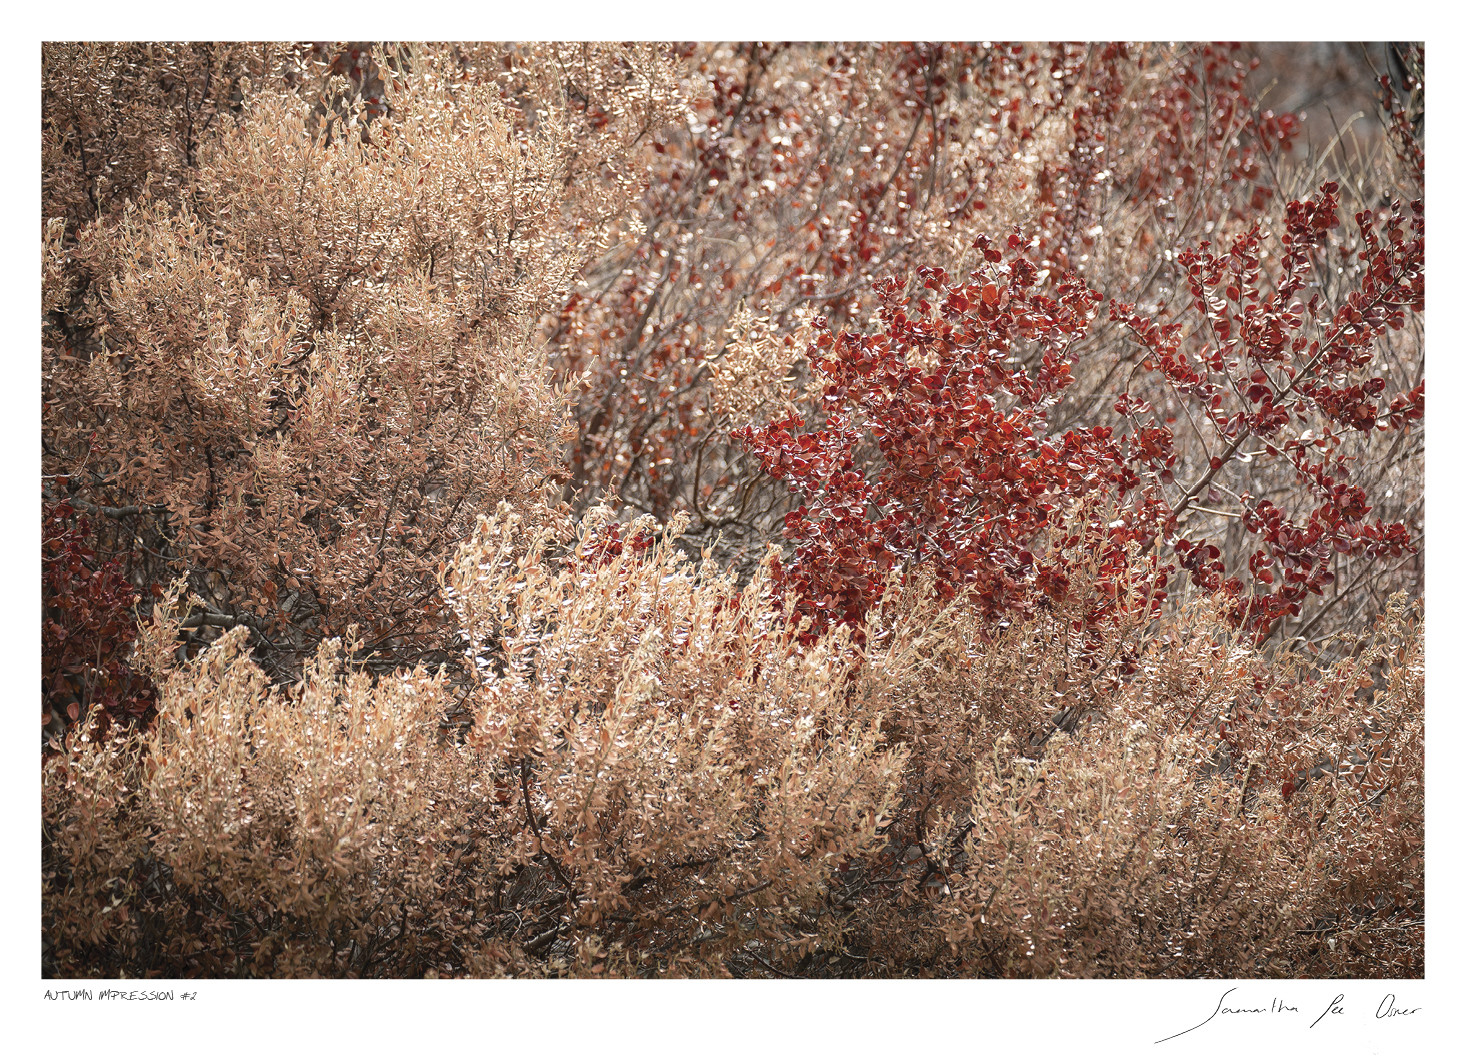 Autumn Impression No.2 | Samantha Lee Osner